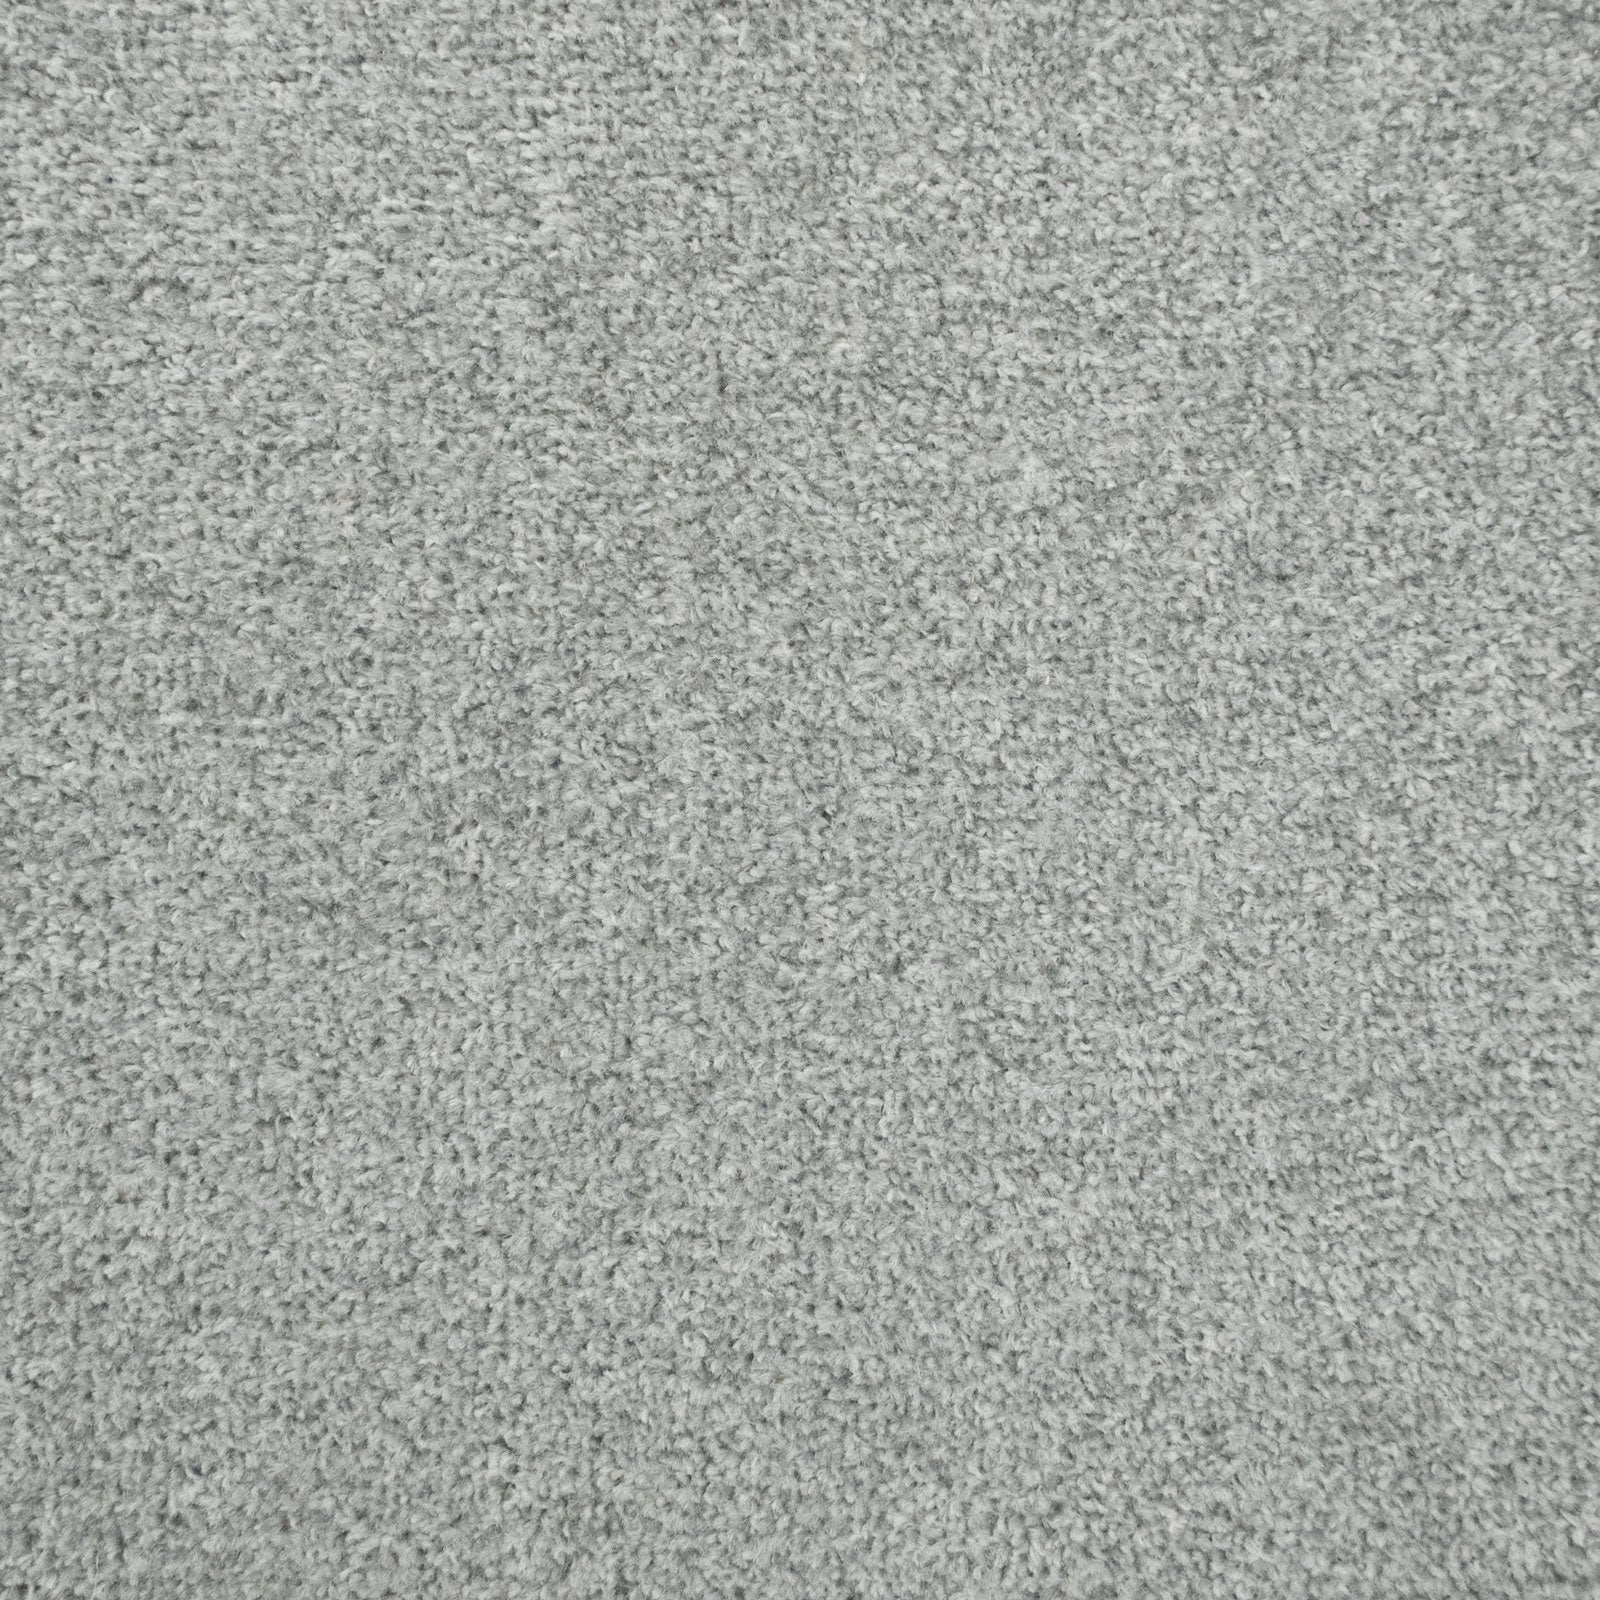 Cloudy Grey Liberty Heathers Twist Carpet - Far